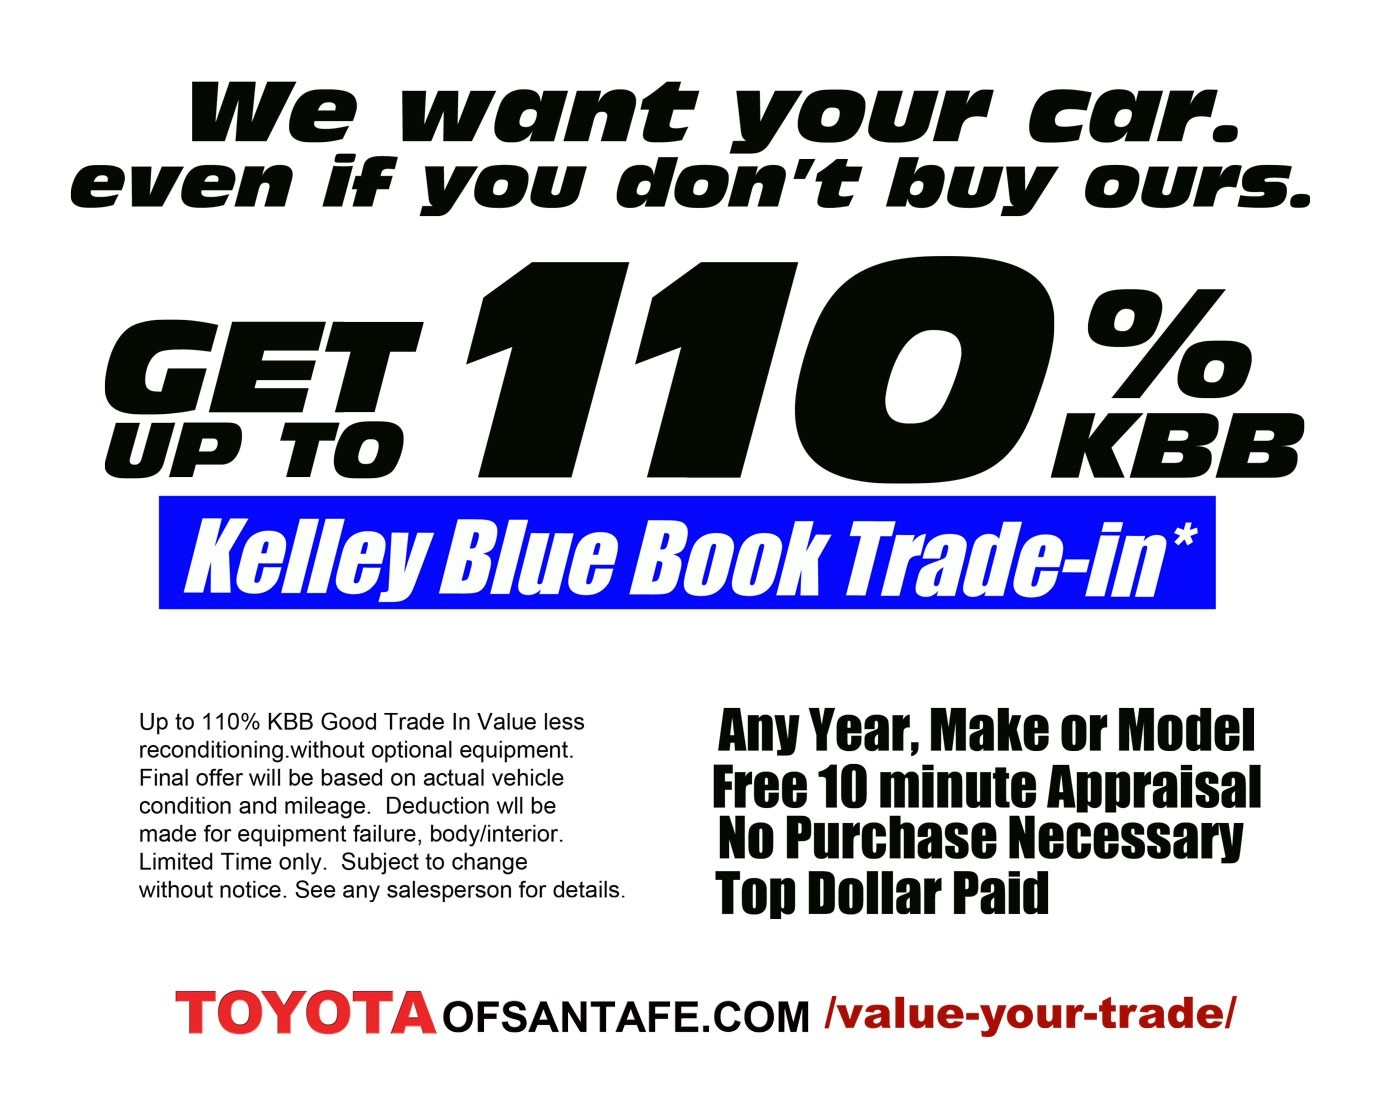 up to 110% KBB Good Trade in Value on your used Car